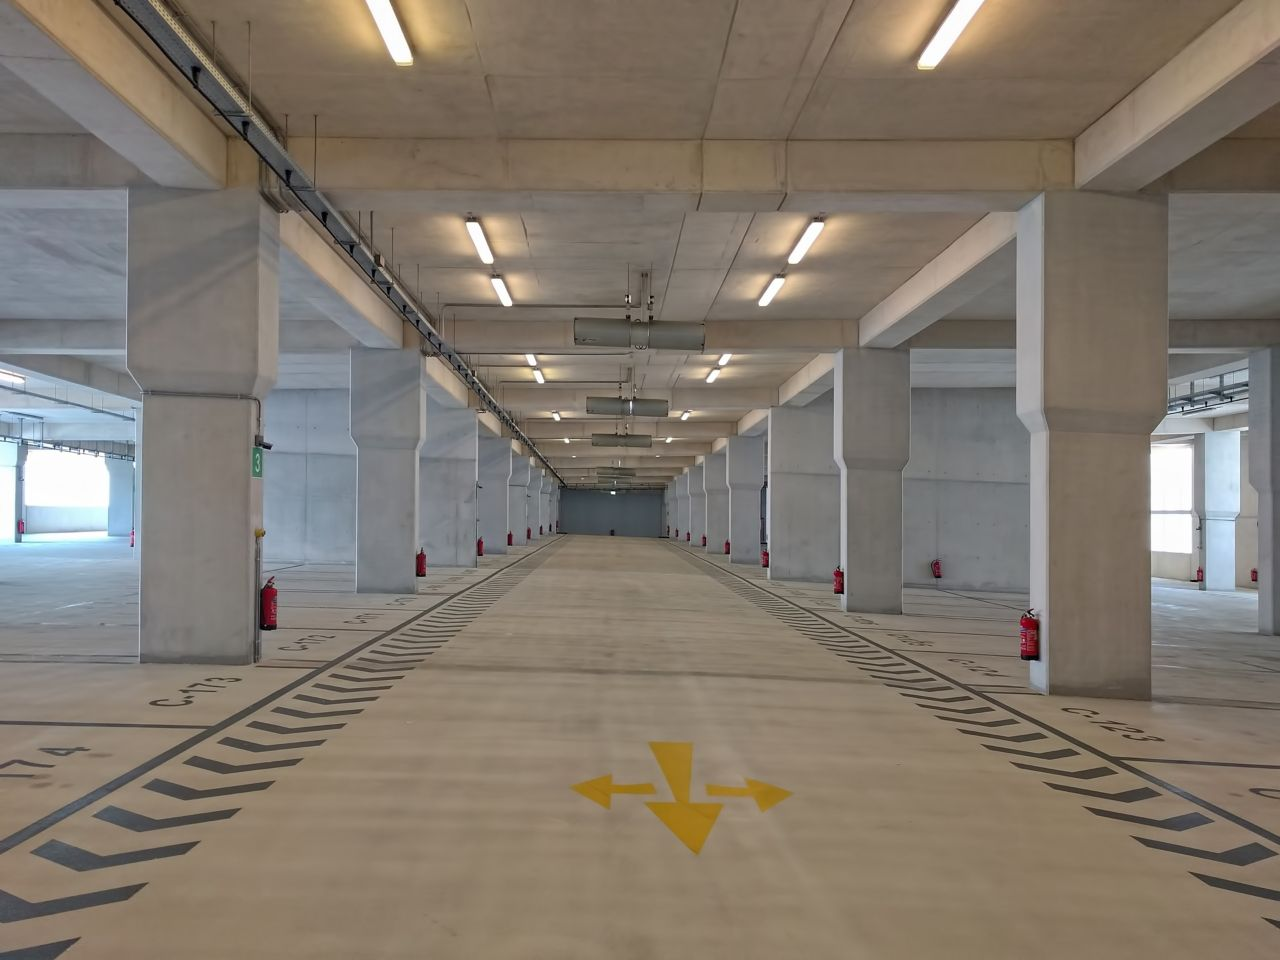 Car parking garage floor of the Stavros Niarchos Foundation Cultural Center